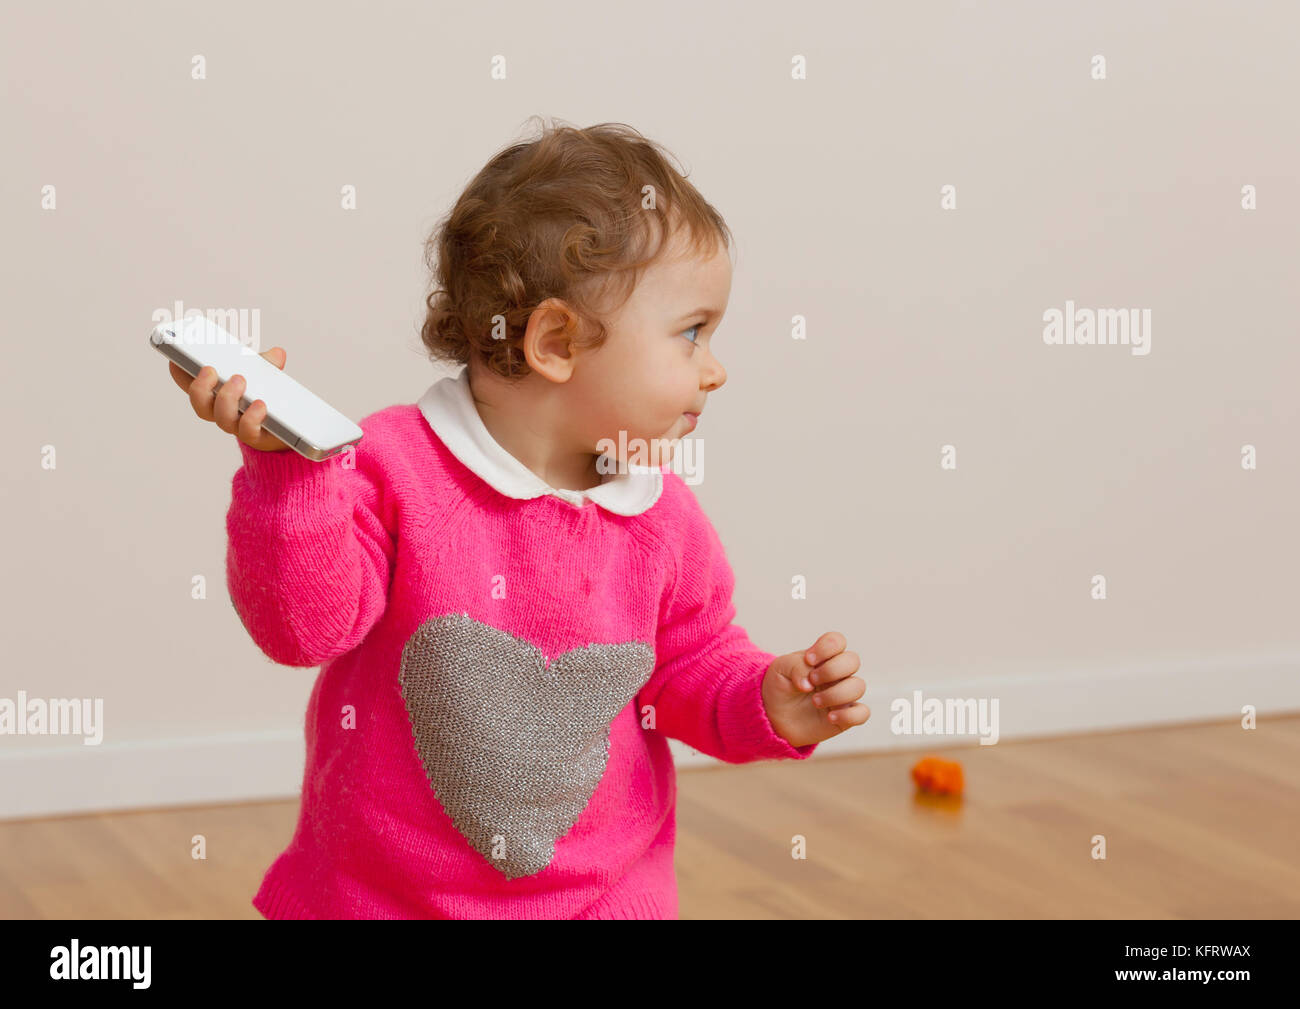 Toddler baby girl plays with smart phone. Concept of social problem. - Stock Image